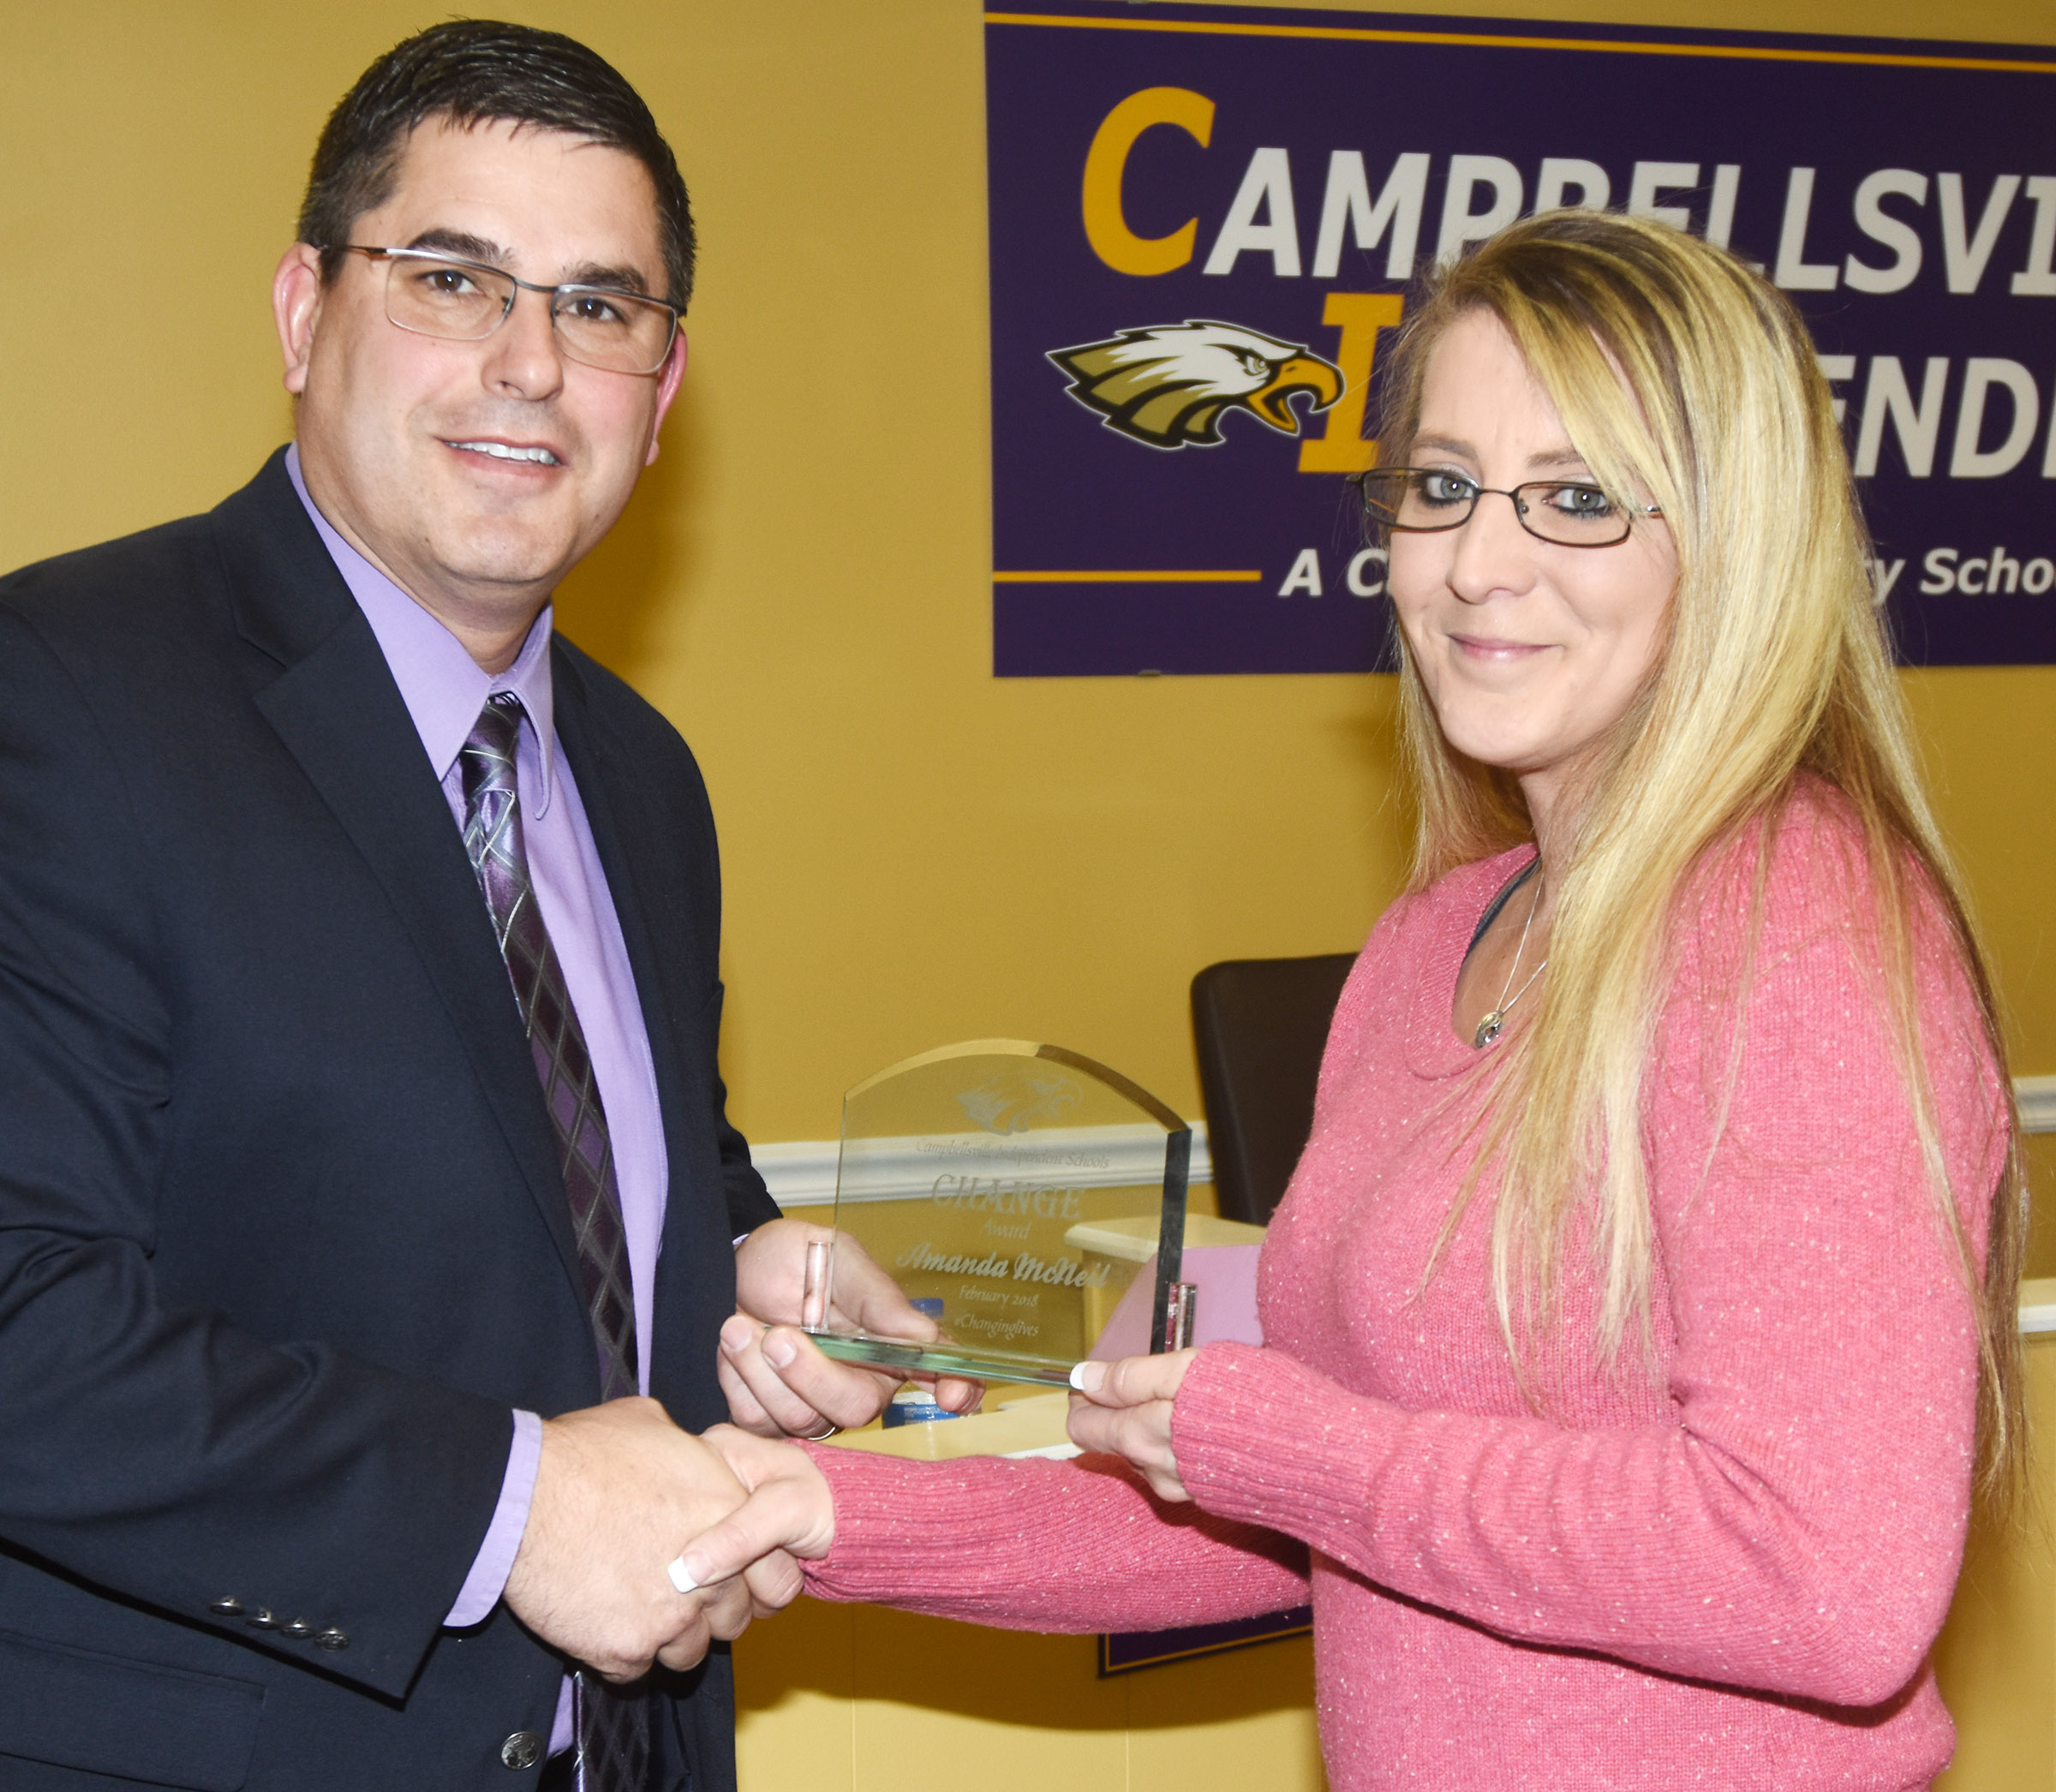 Campbellsville Independent Schools Superintendent Kirby Smith, at left, honors CIS alumnus and parent Amanda McNeill with the community Change Award.